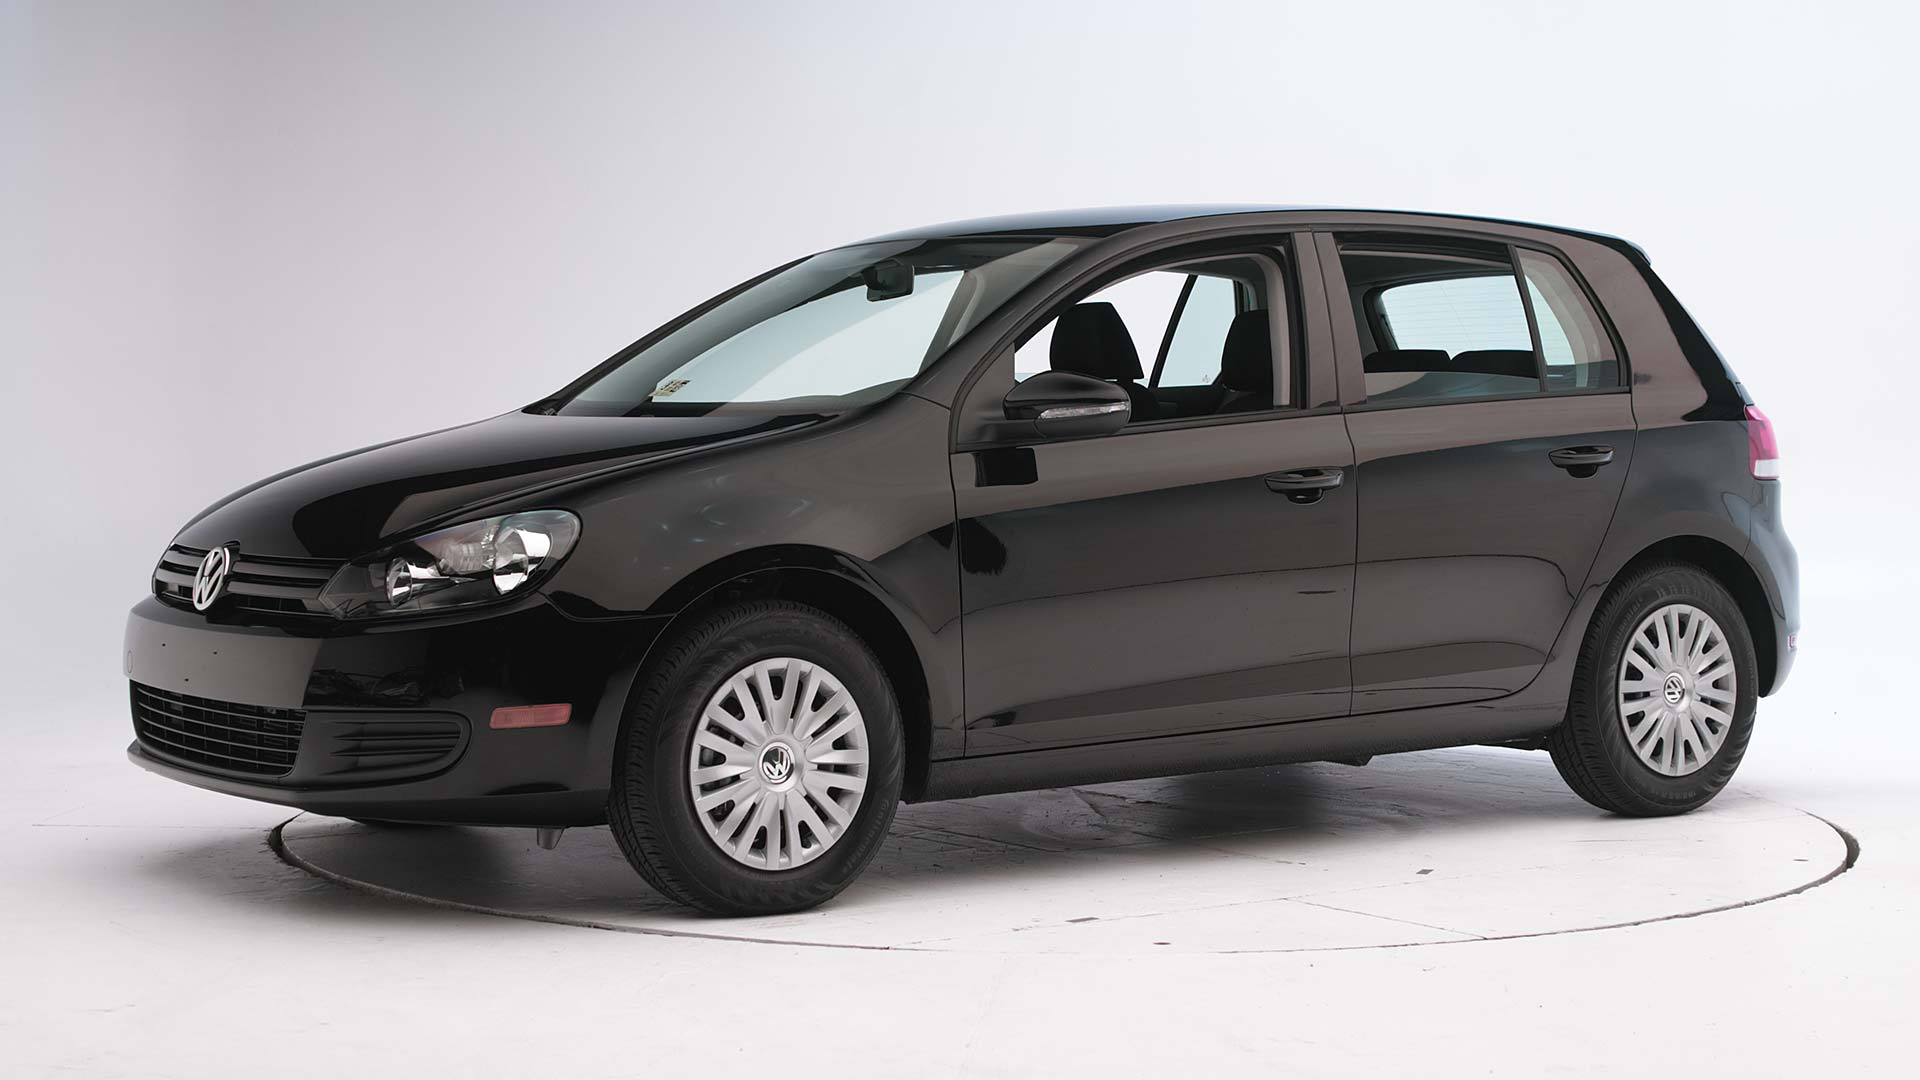 2010 Volkswagen Golf 4-door hatchback